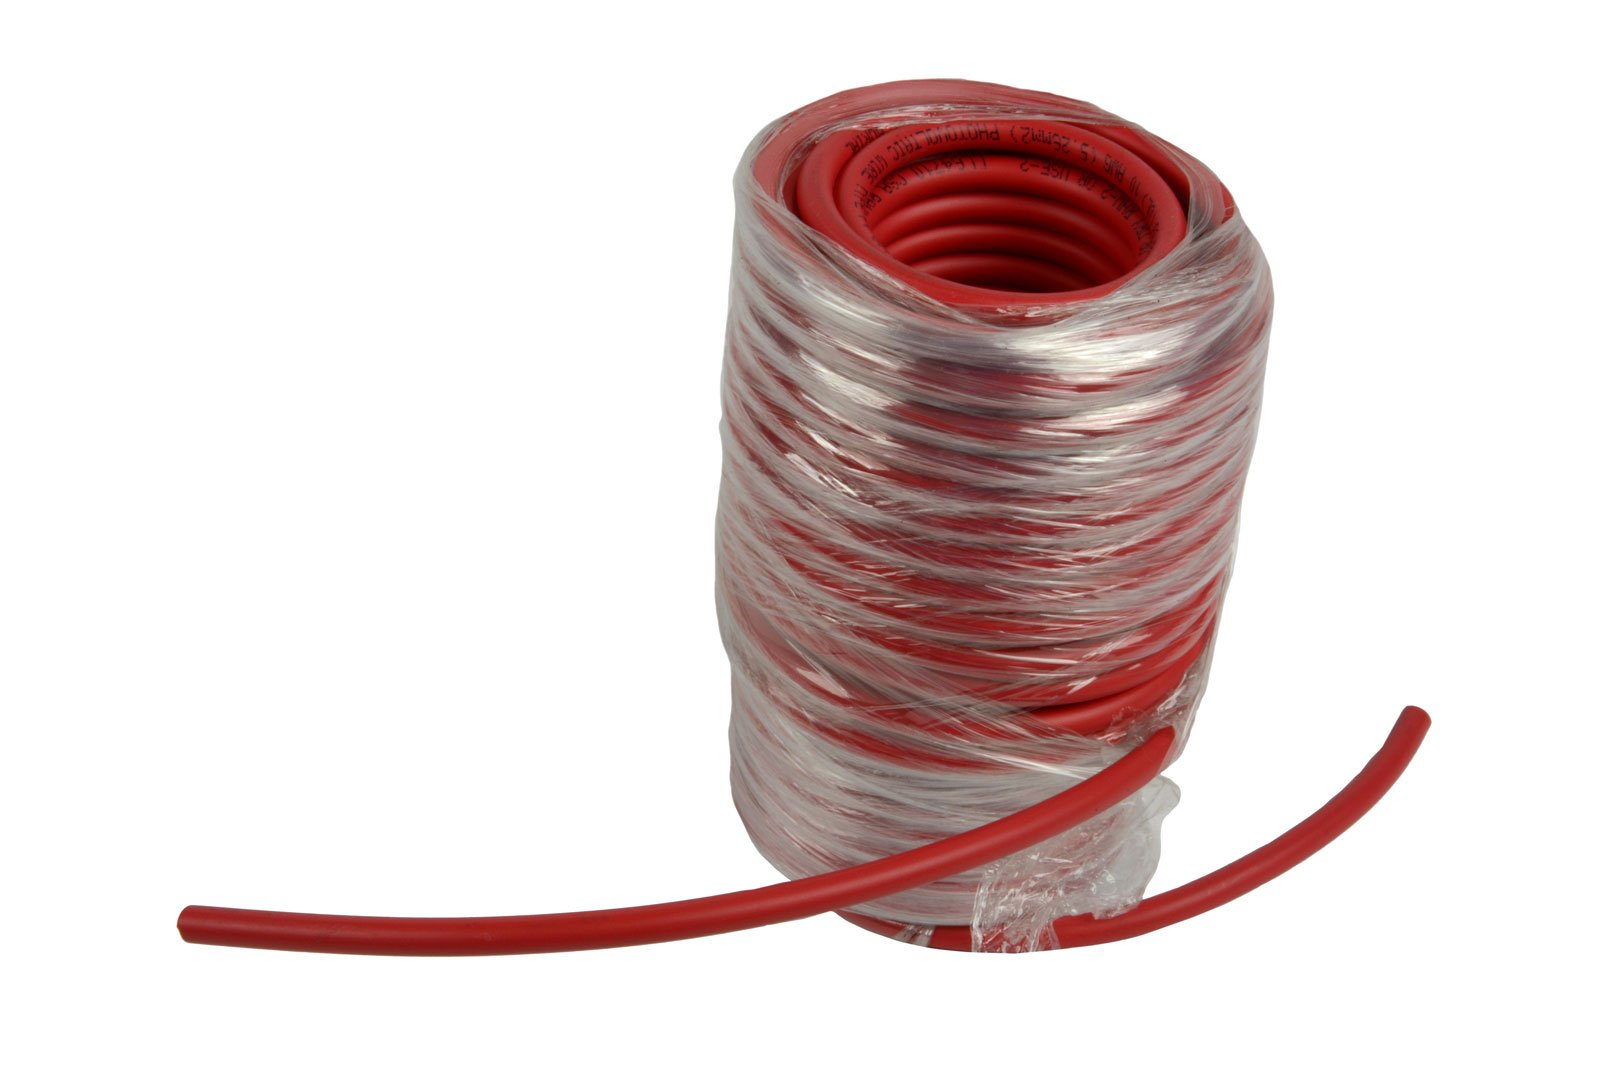 Temco 10 AWG Solar Panel Wire 50' Power Cable Red UL 4703 Copper Made in USA PV Gauge